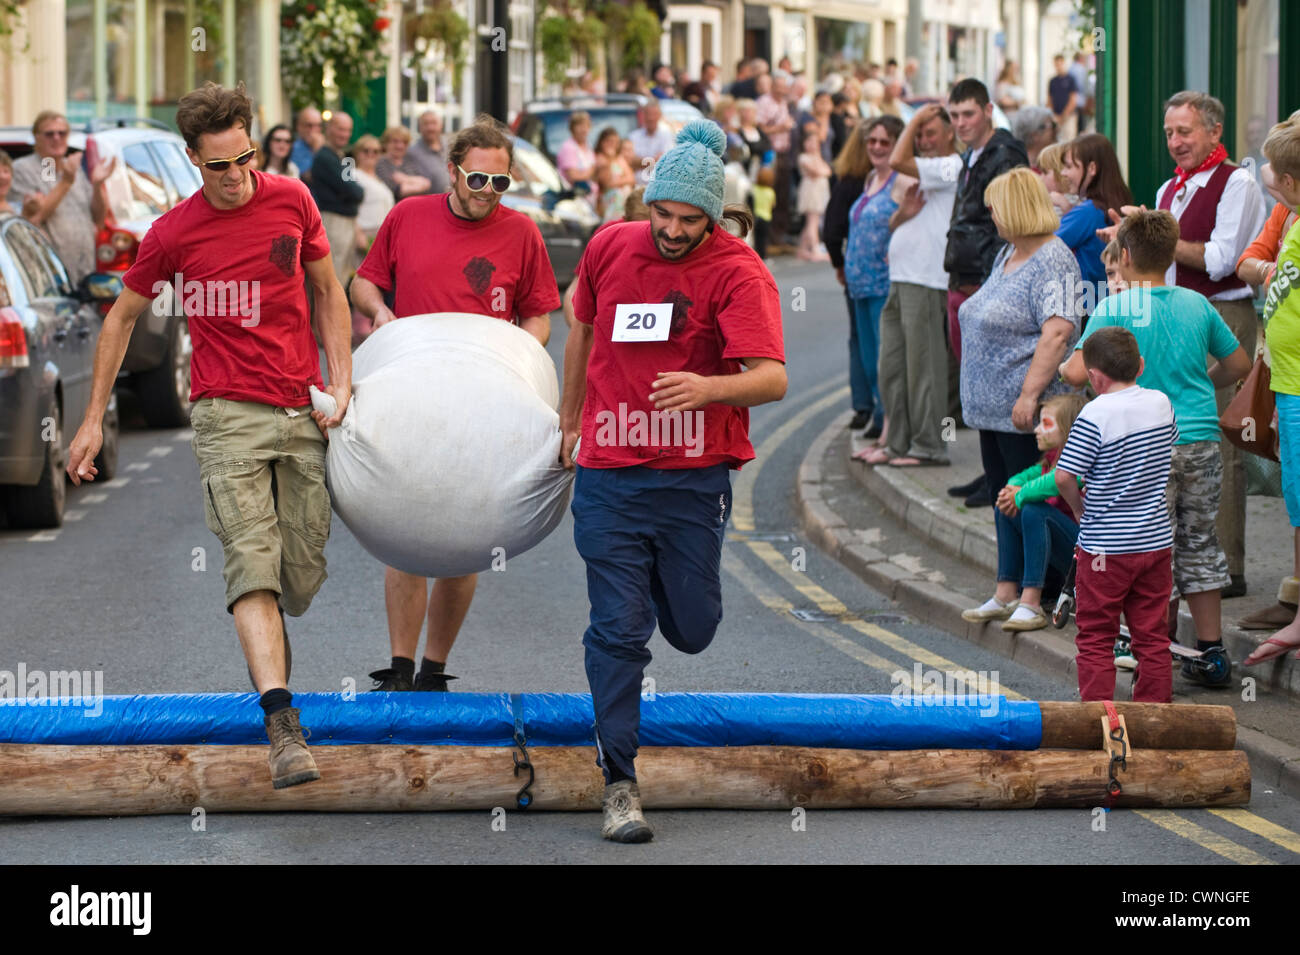 Local men's team jump the hurdle in the annual World Championship Hop Pocket Race at Bromyard Herefordshire - Stock Image